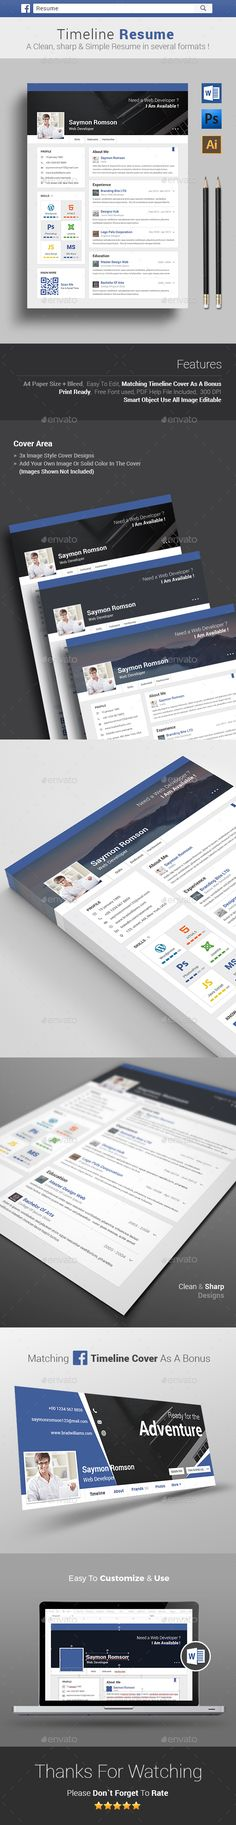 Resume Resume and Stationery - simple easy resume templates